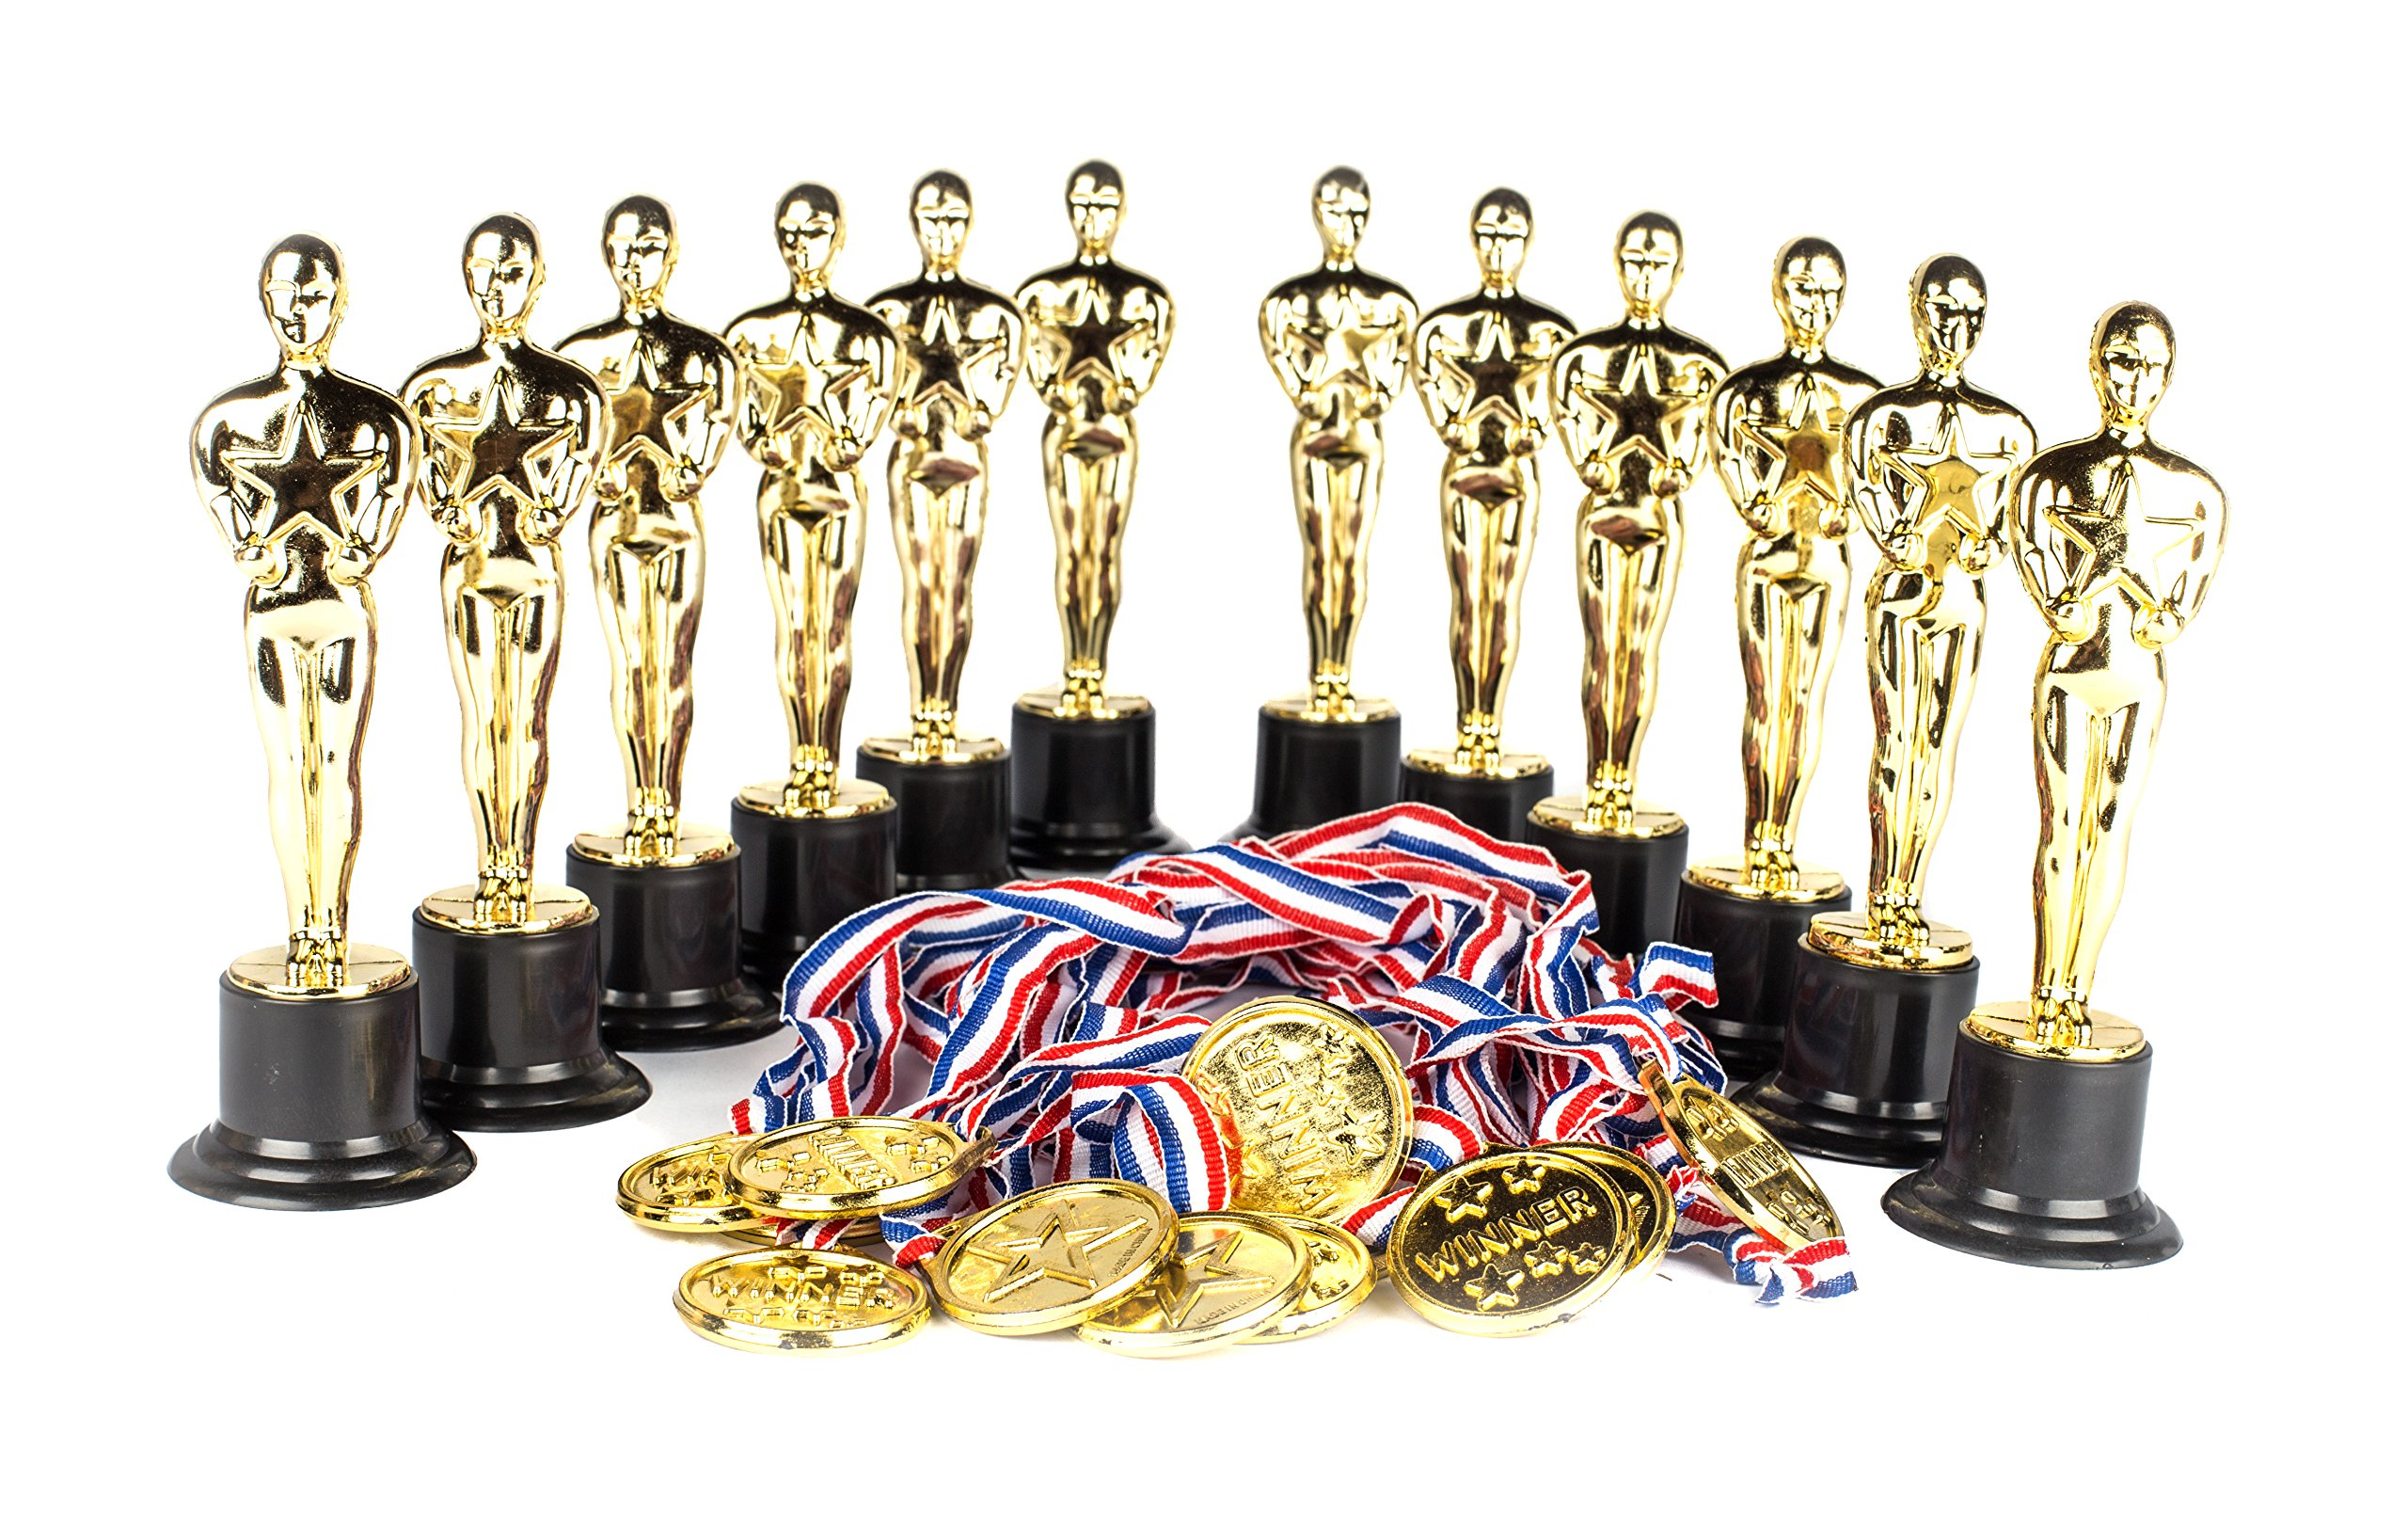 "Award Medal of Honor Trophy Award Set of 24; Includes 12 Gold Winner Award Medals; 12 Gold Award Trophy Statues 6"" Award Trophies for Award Ceremonies, Party Favors, Goody Bag Stuffers, Party Supplies"